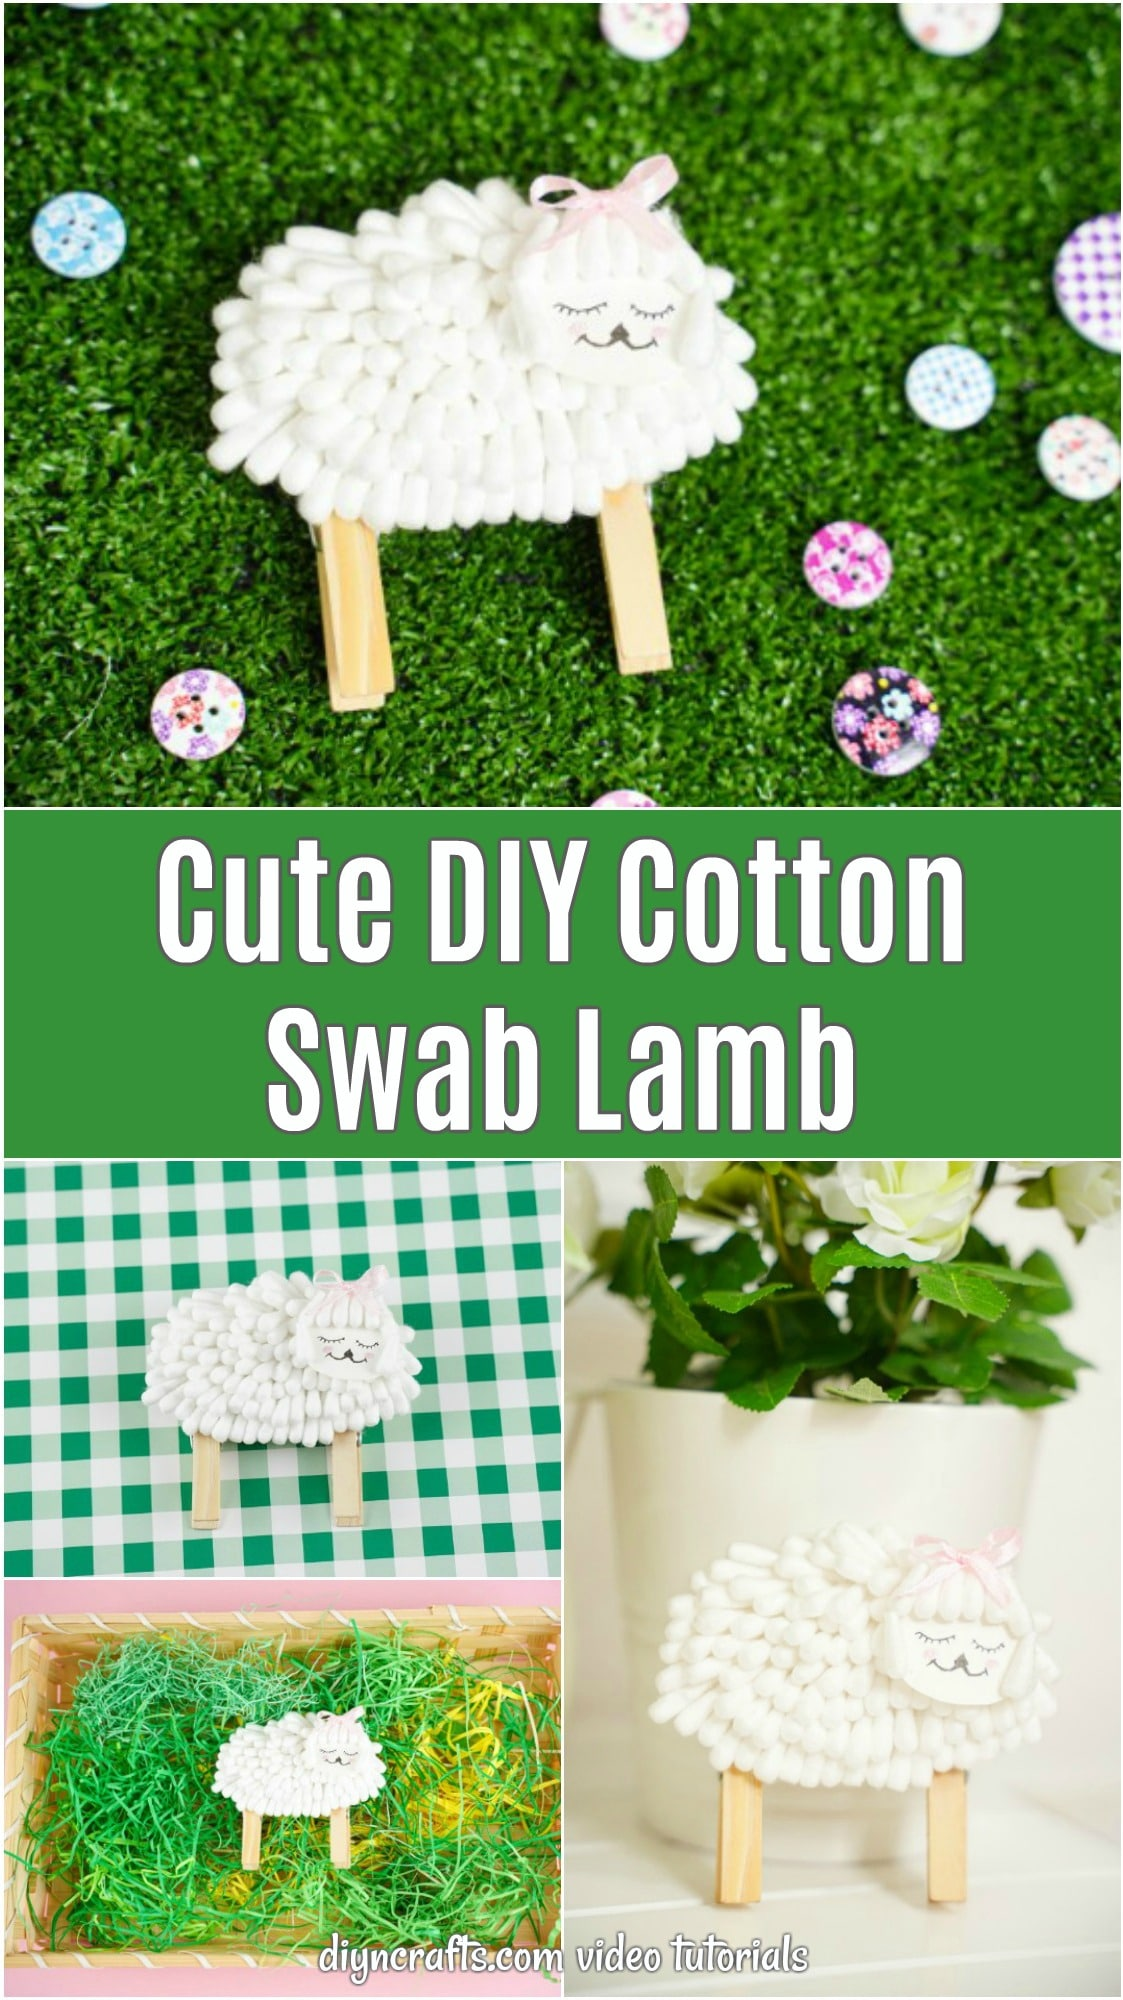 Cotton swab lamb pictures